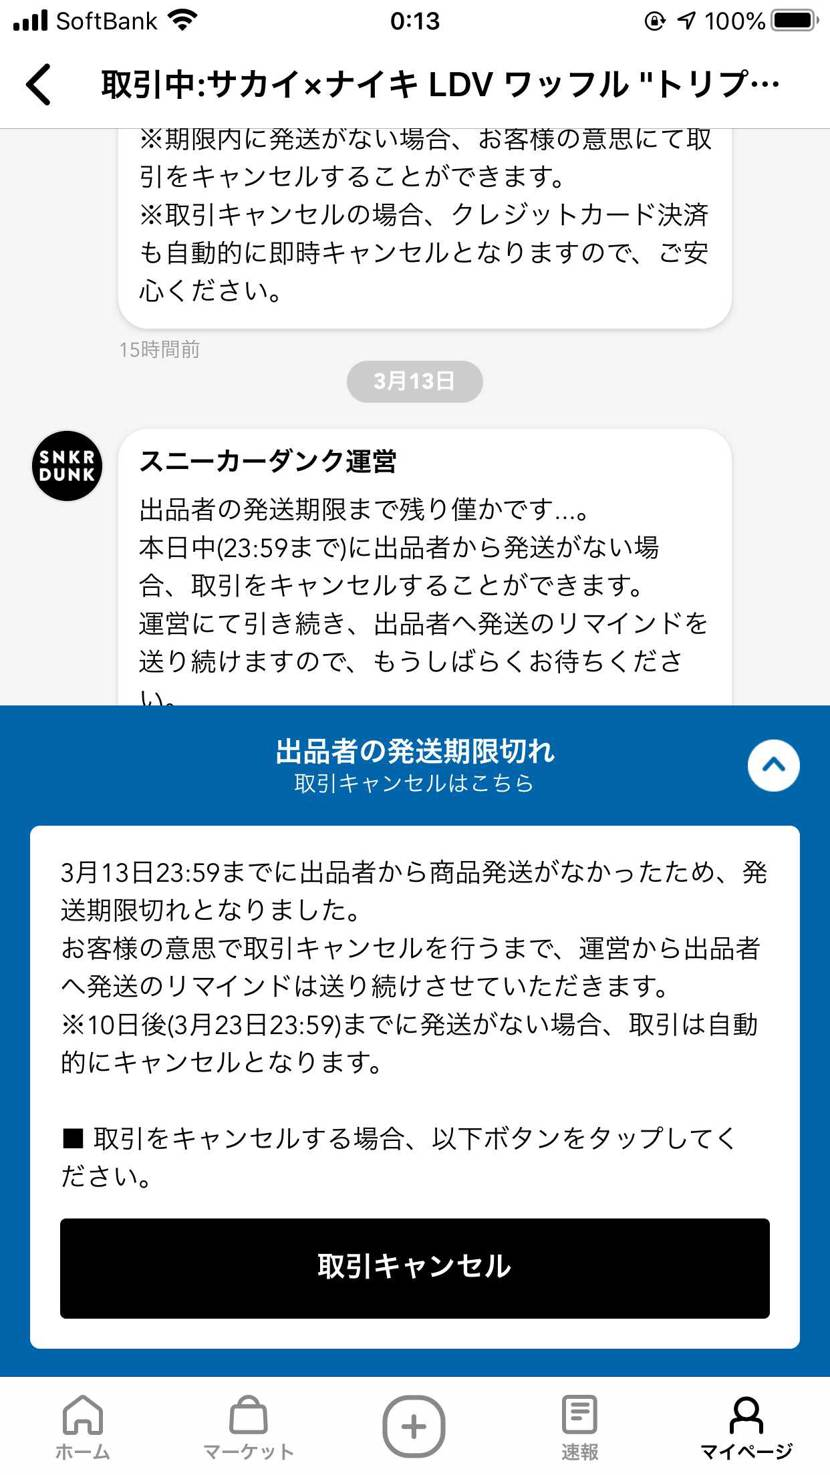 sacai白狙いましたが、sns、end、SNKRS抽選外れて、プレ値購入したス